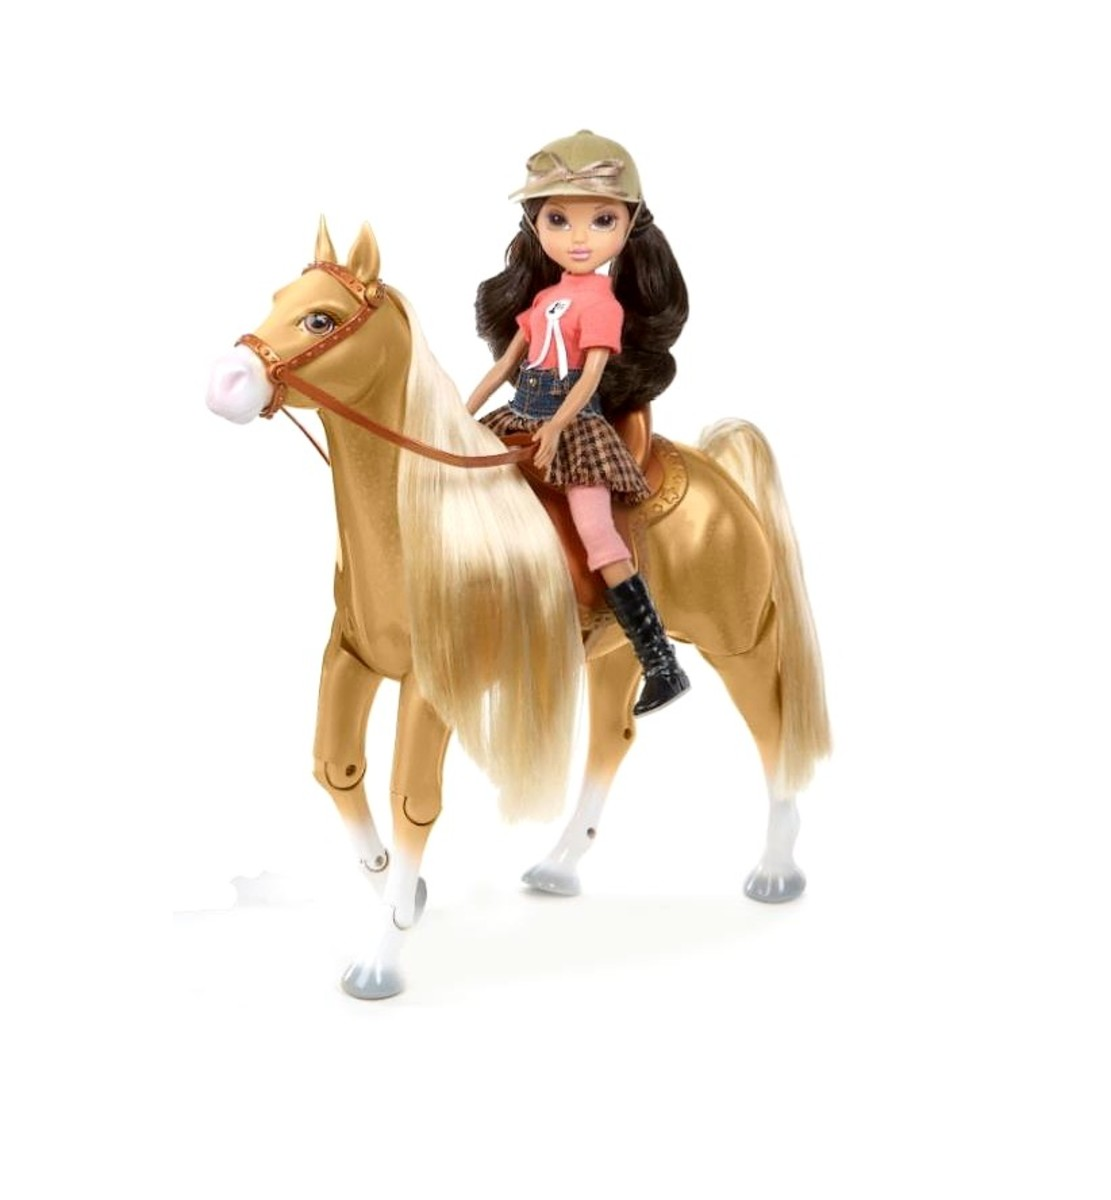 Moxie Girlz Doll and Horse    Moxie Girlz in contemporary horseback riding outfit with riding boots and hat. Fun horseback riding pieces